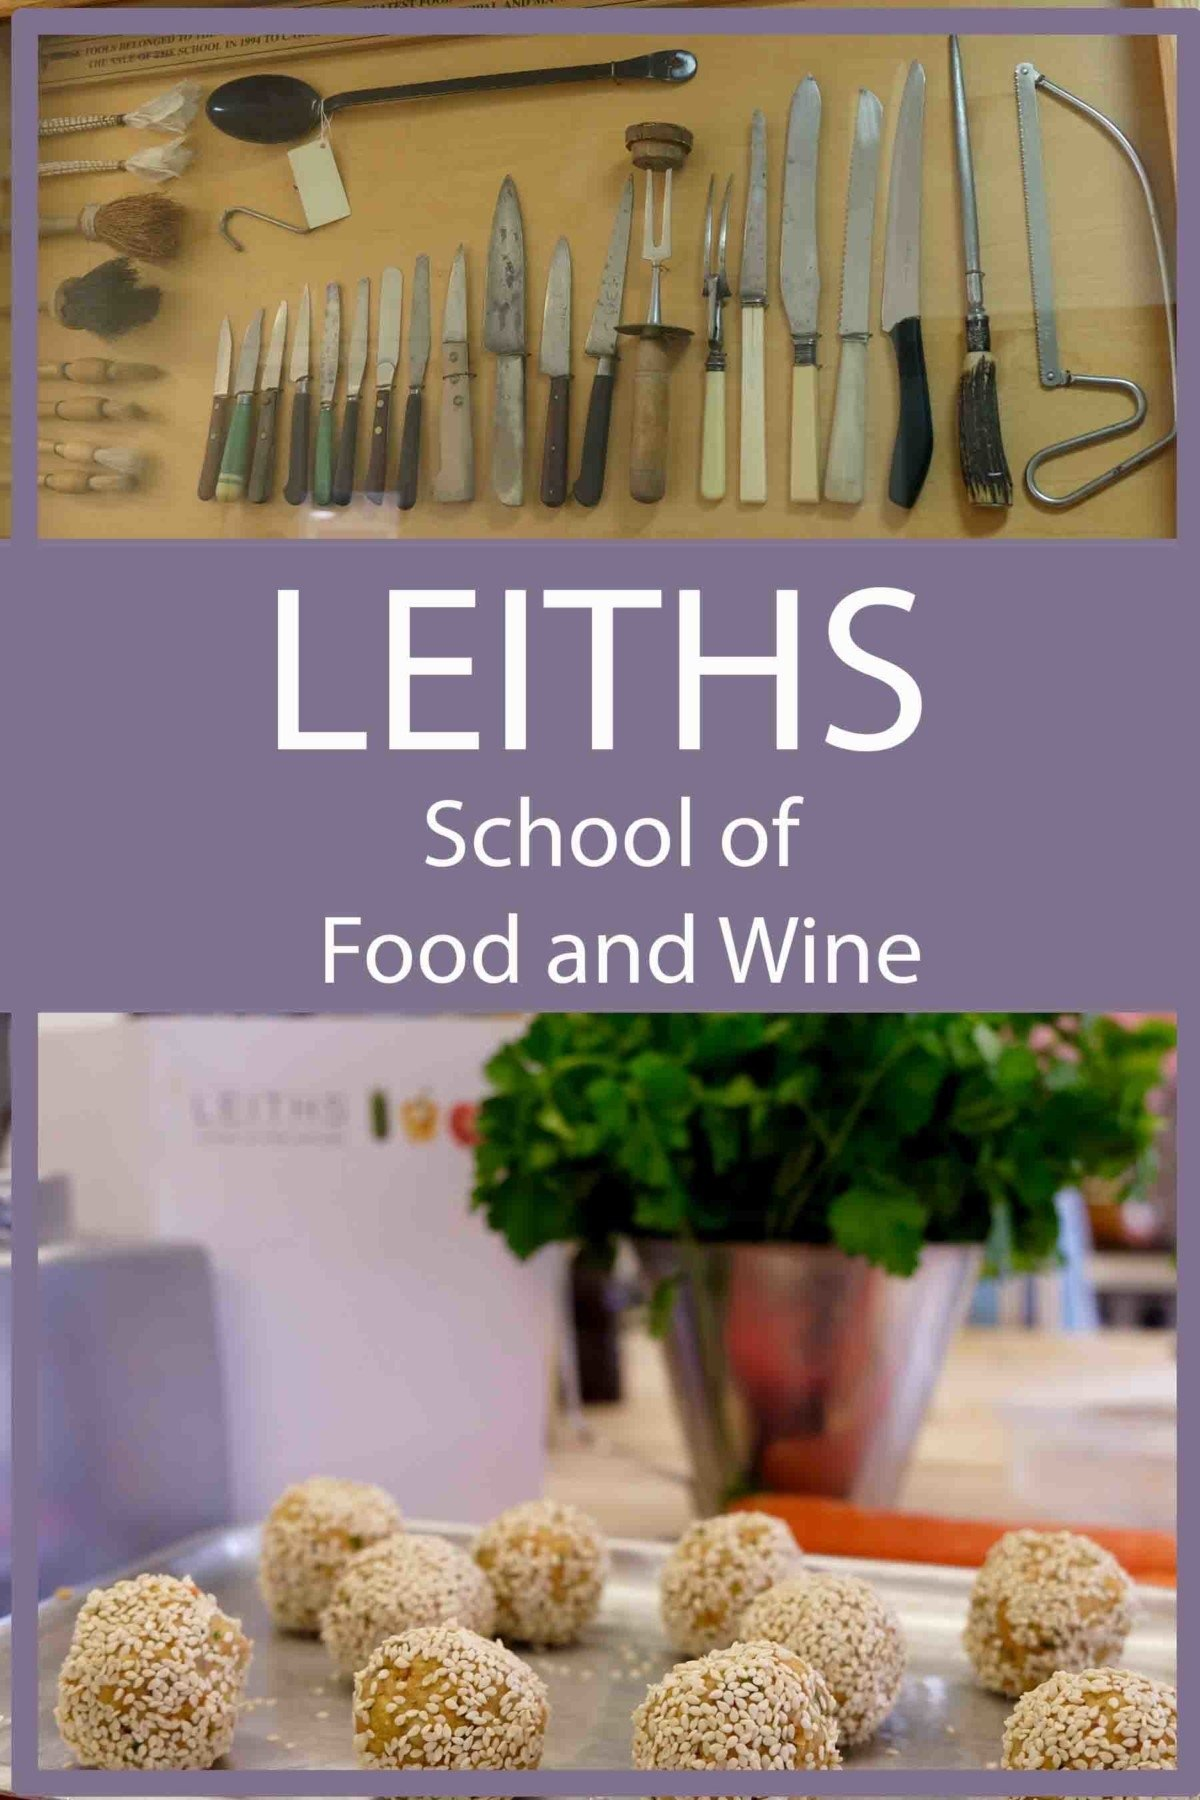 leith school of food and wine review pin